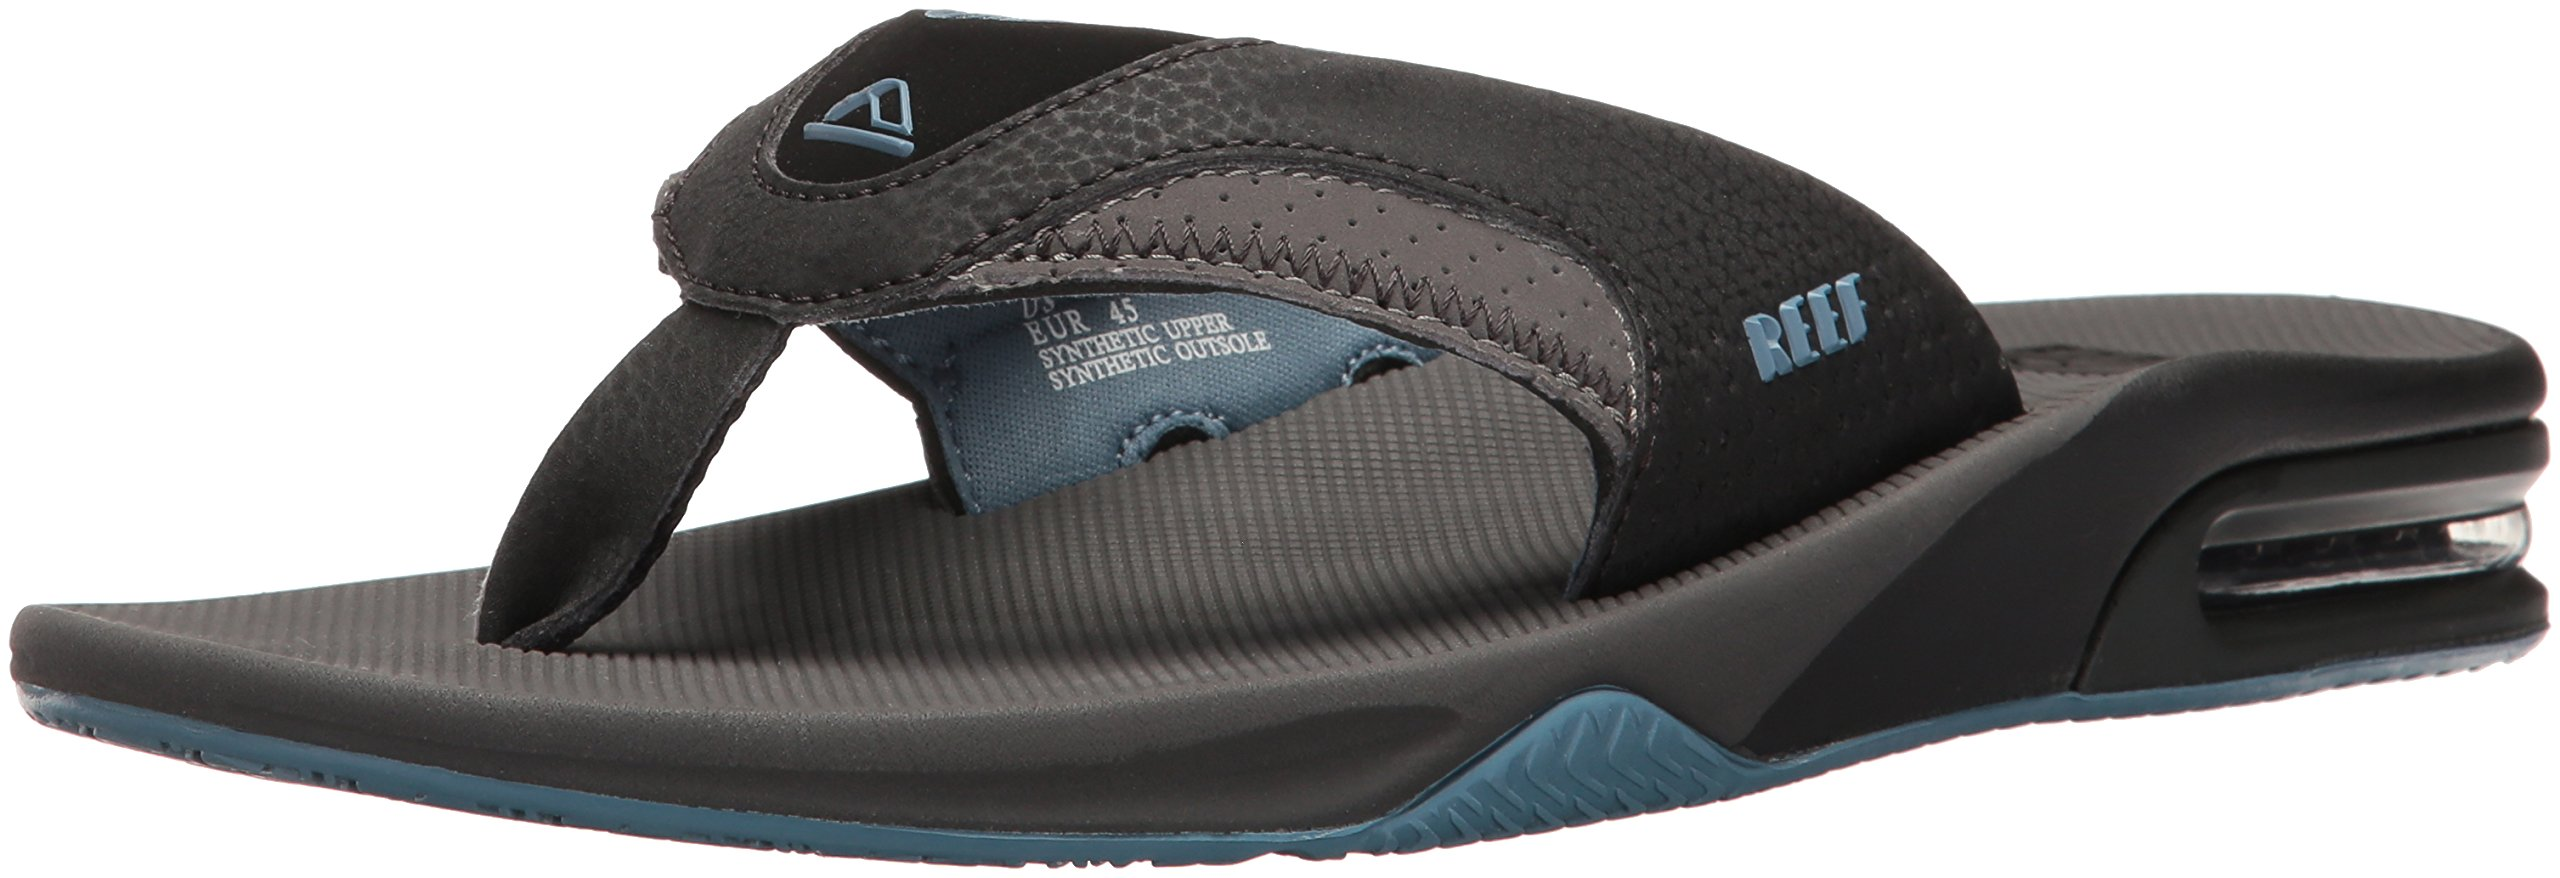 Reef Men's Fanning Flip-Flop Grey/Light Blue 11 M US